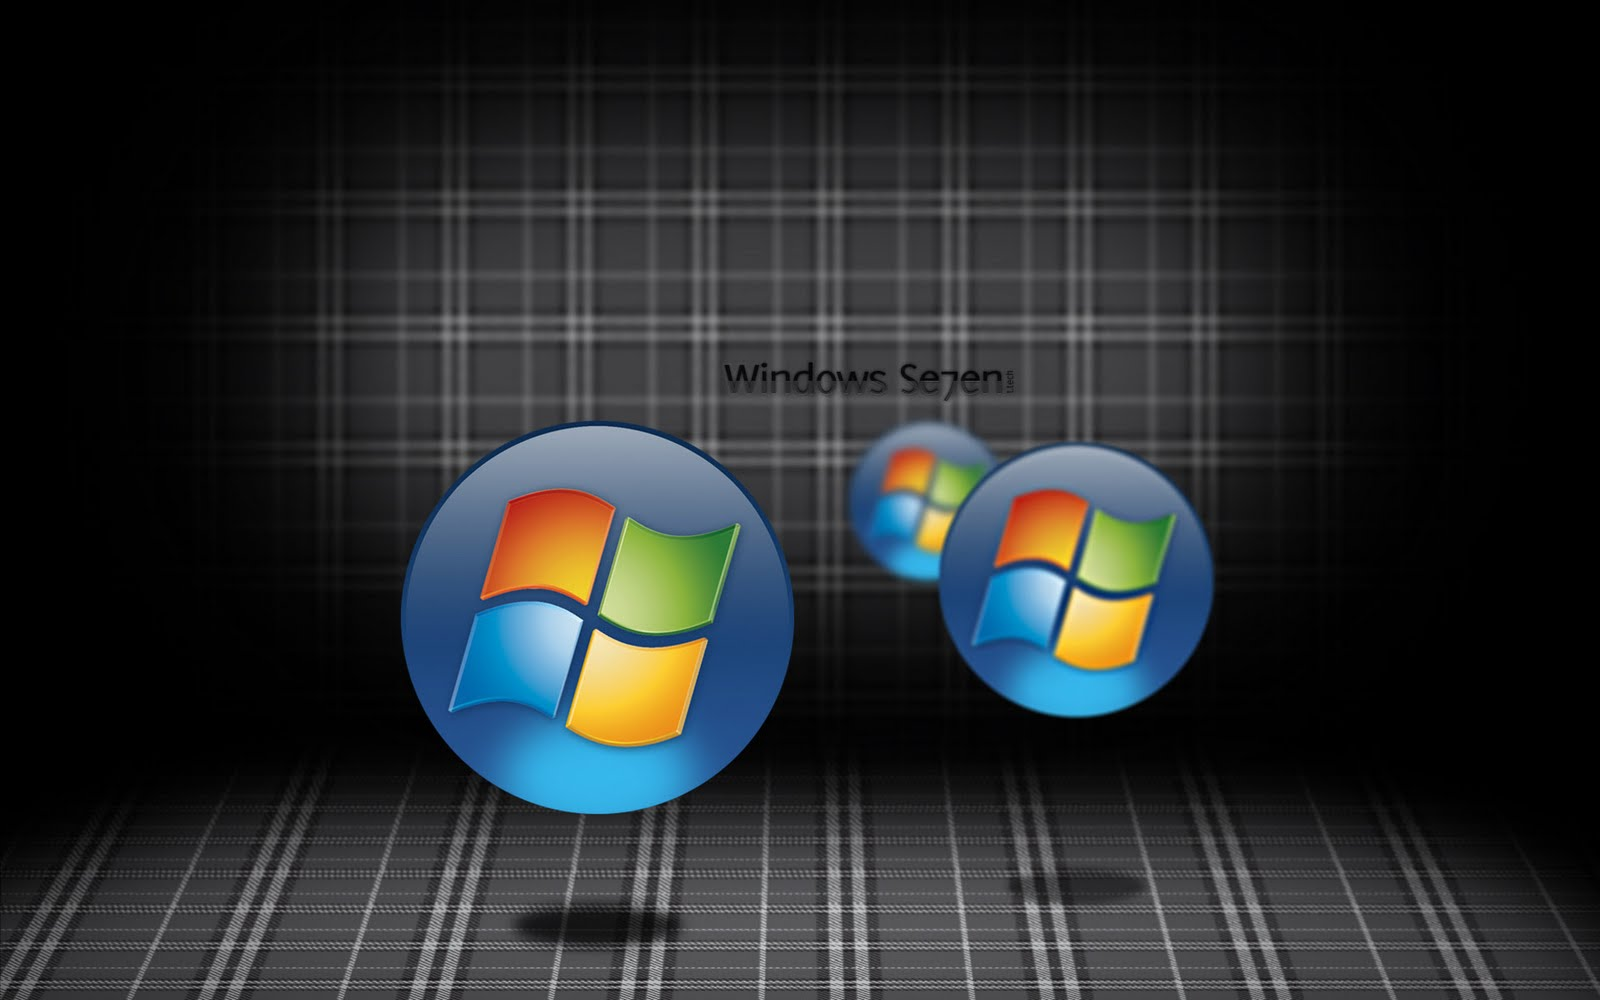 Funtoosh Mac - Window 7 Desktop - Hd Wallpapers-4054